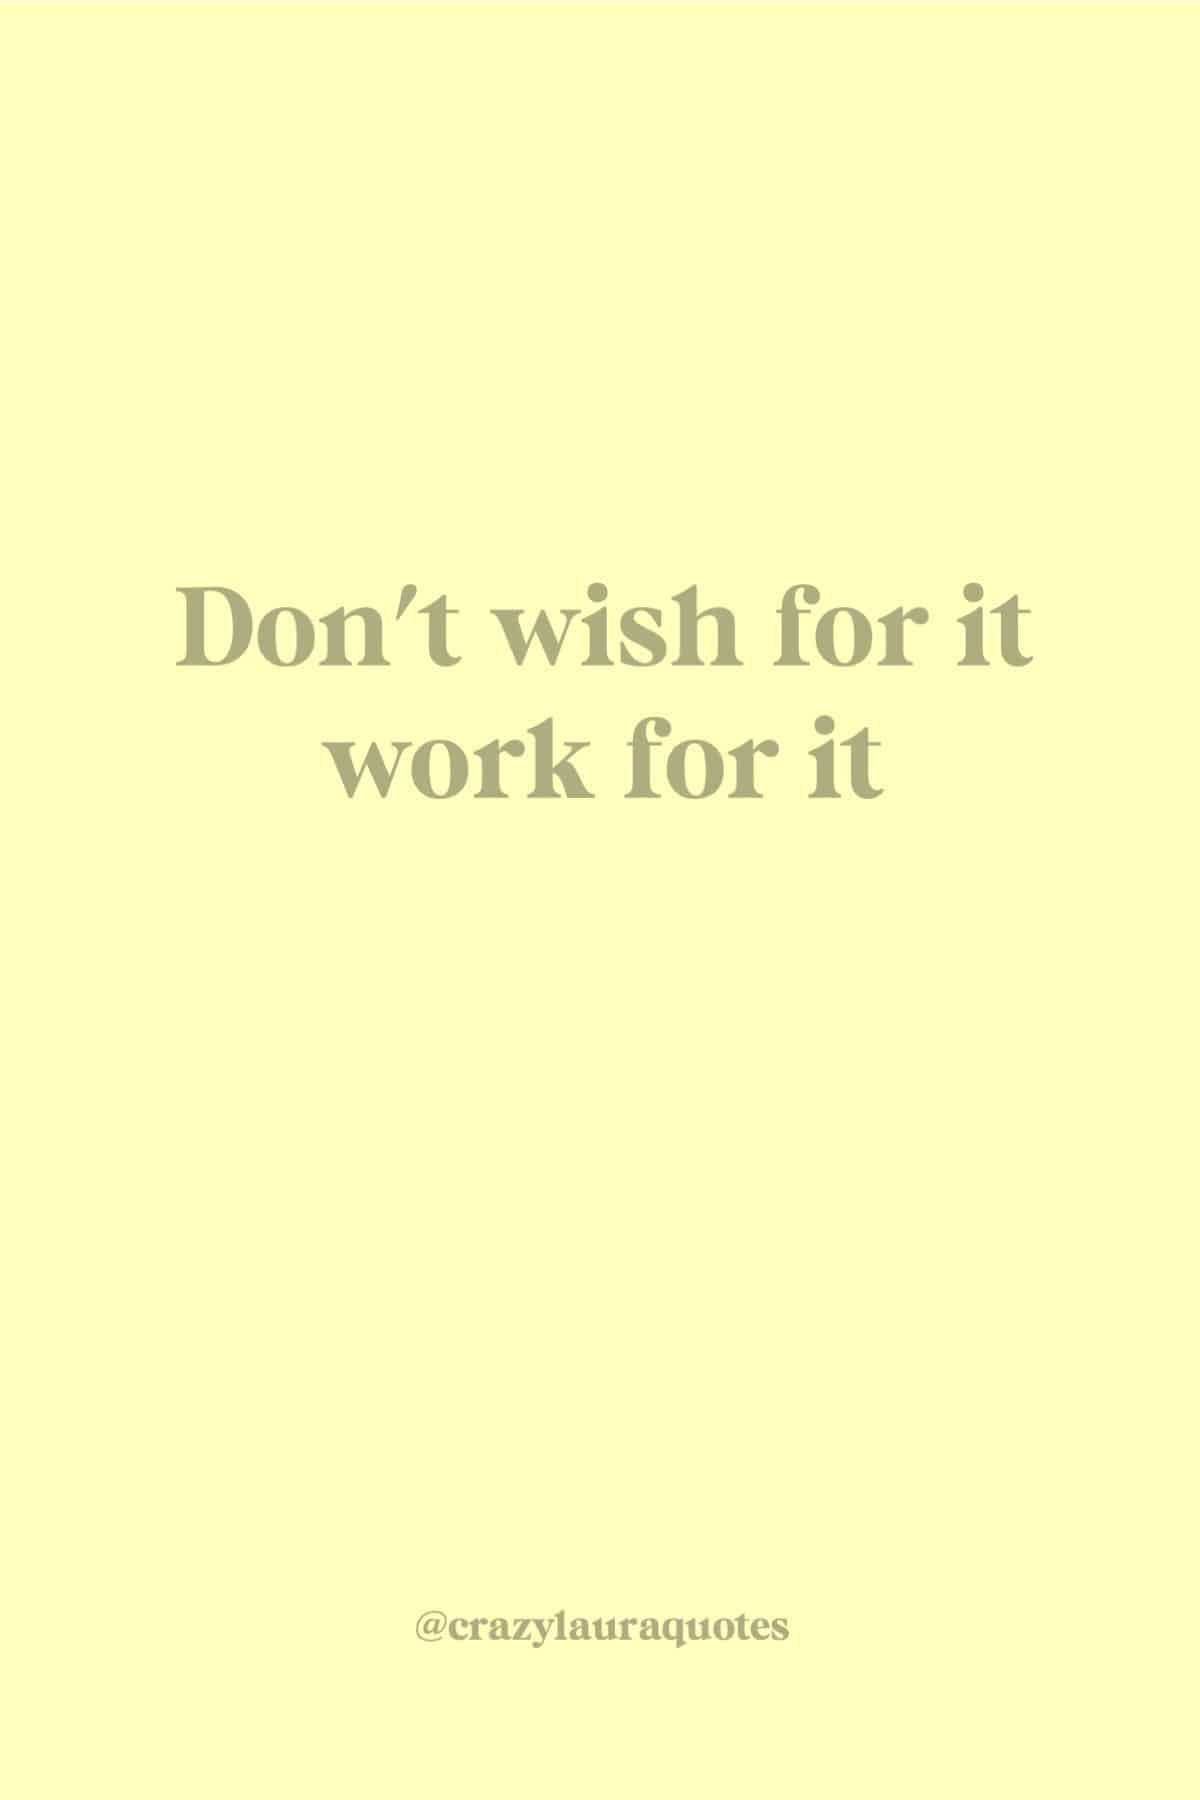 short don't wish for it gym quote